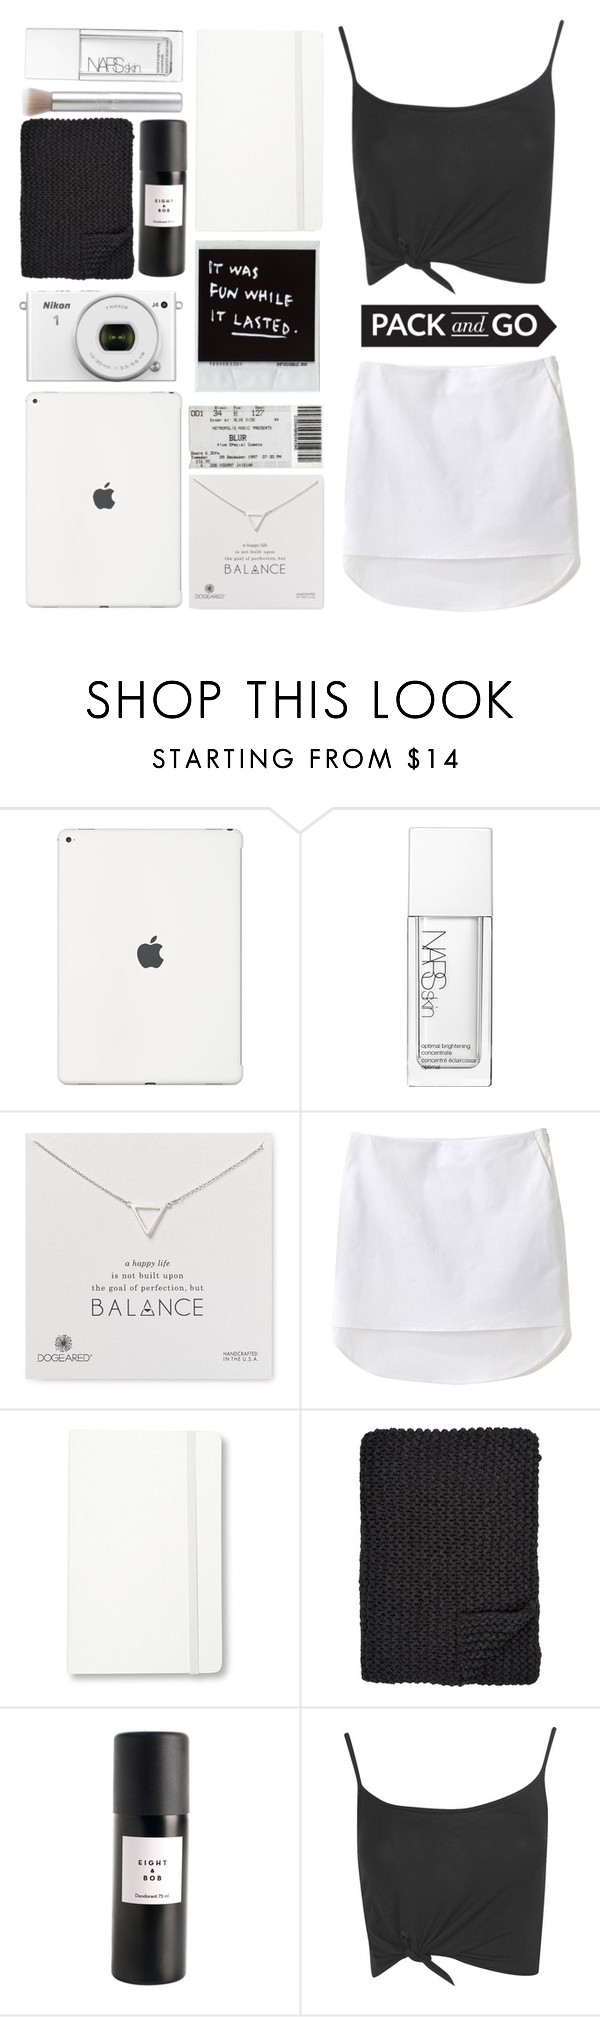 """""""pack and go"""" by anastazia-jae ❤ liked on Polyvore featuring NARS Cosmetics, Dogeared, 3.1 Phillip Lim, Moleskine, Alicia Adams, Eight & Bob and Boohoo"""